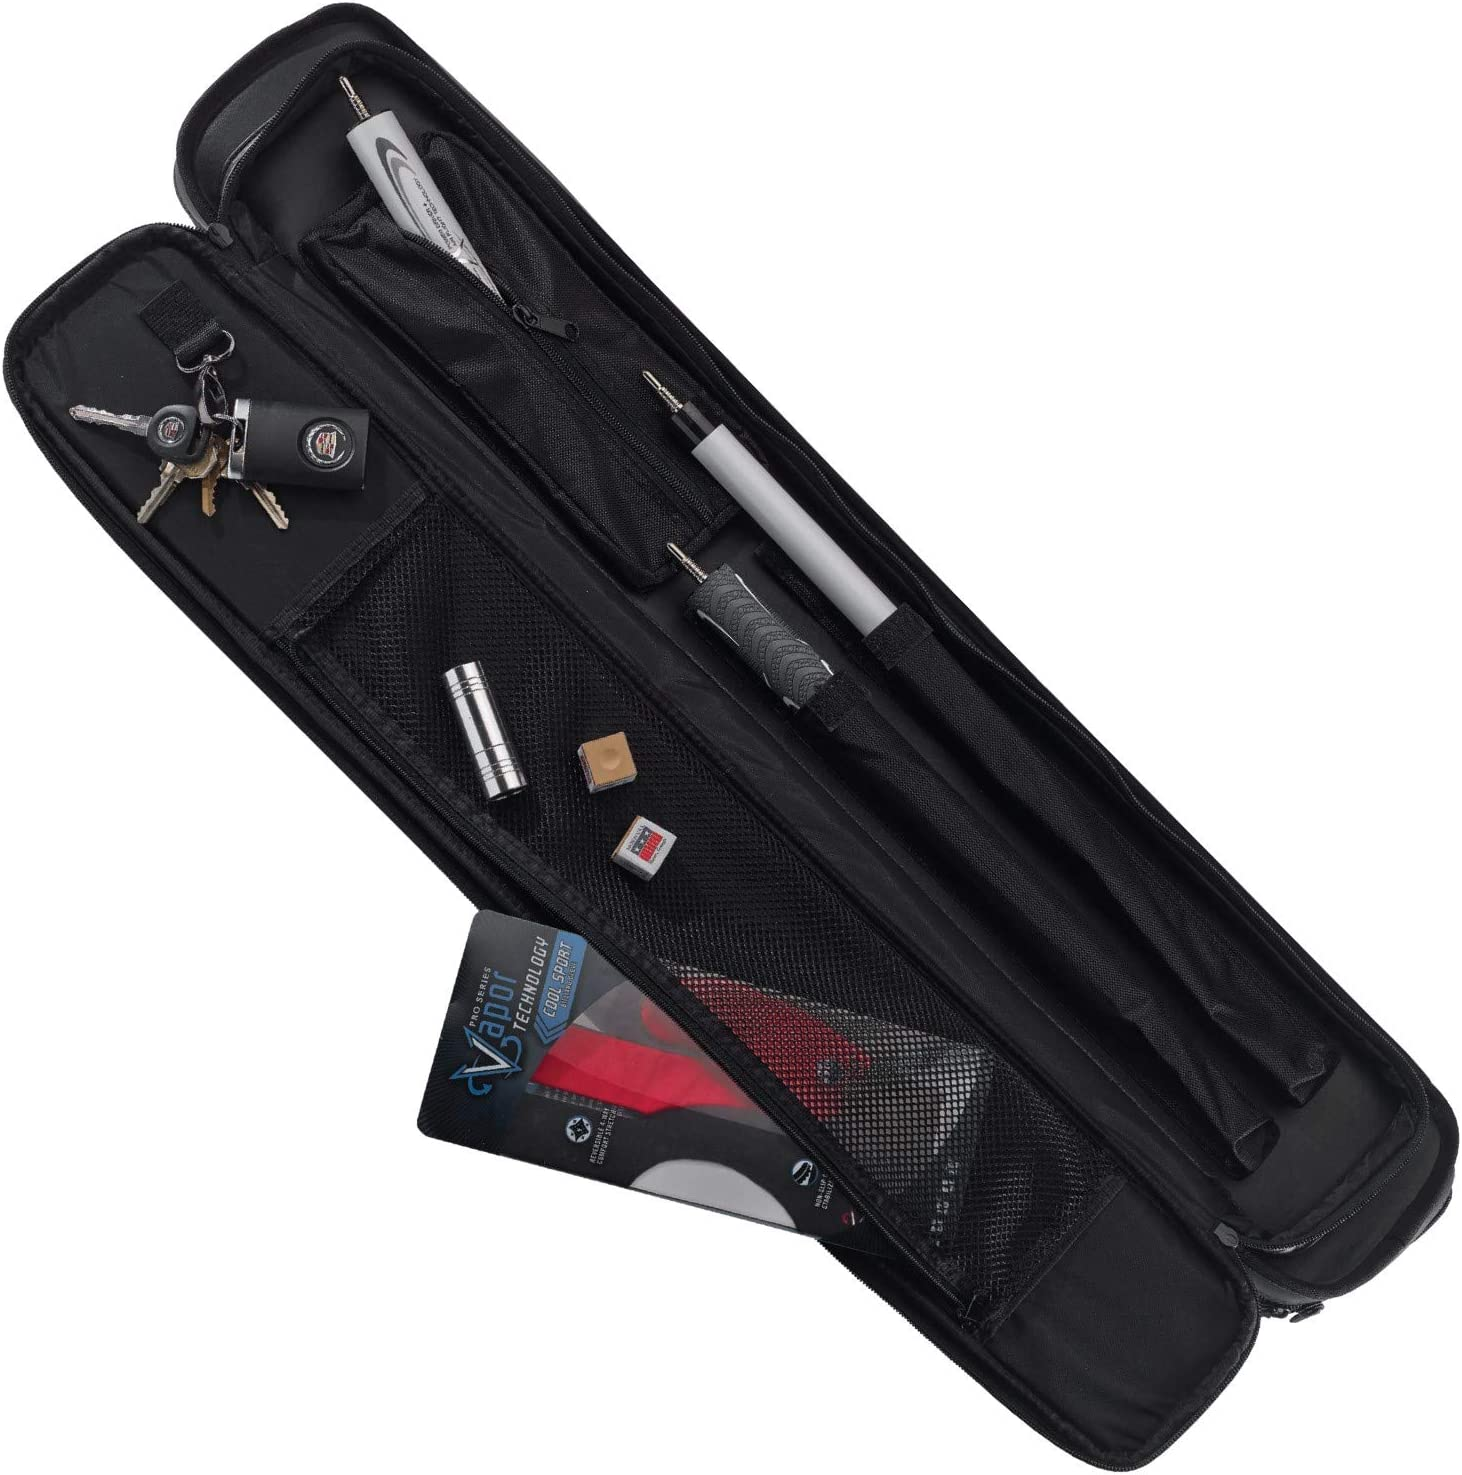 Extra Shafts /& More Jump Break Extensions Holds 4 Cues LUCASI Tournament Pro 4x8 Pool Cue Case